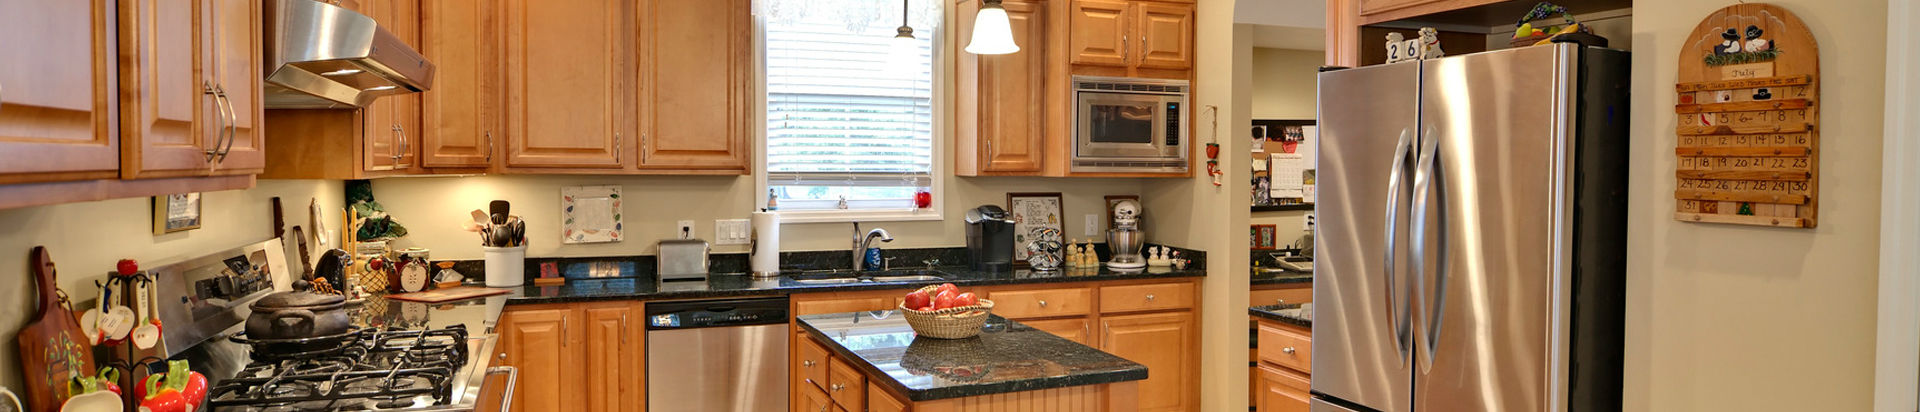 kitchen remodeling kitchen remodeling houston Kitchen Remodeling in Houston Sugarland Katy Area